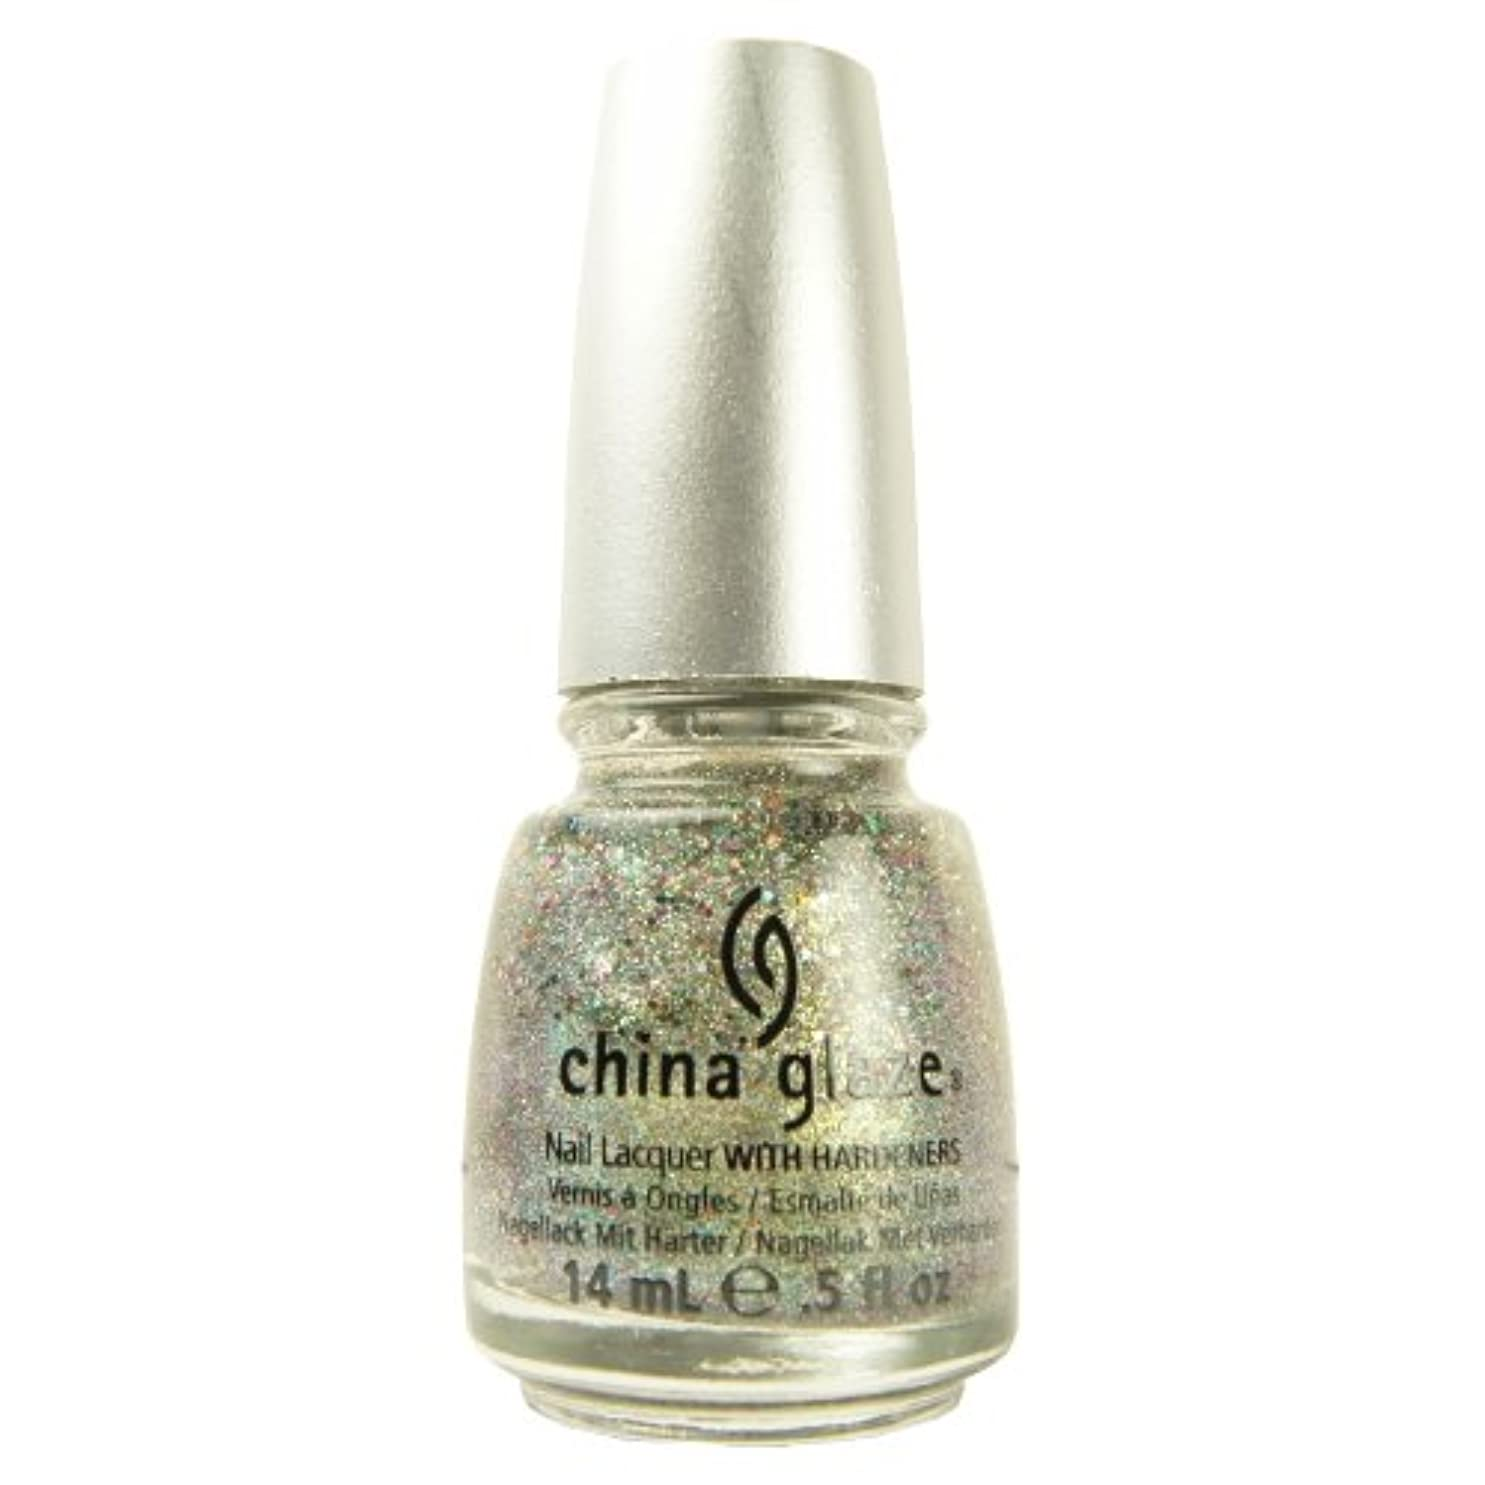 干し草キロメートル十代(3 Pack) CHINA GLAZE Glitter Nail Lacquer with Nail Hardner - Ray-Diant (DC) (並行輸入品)